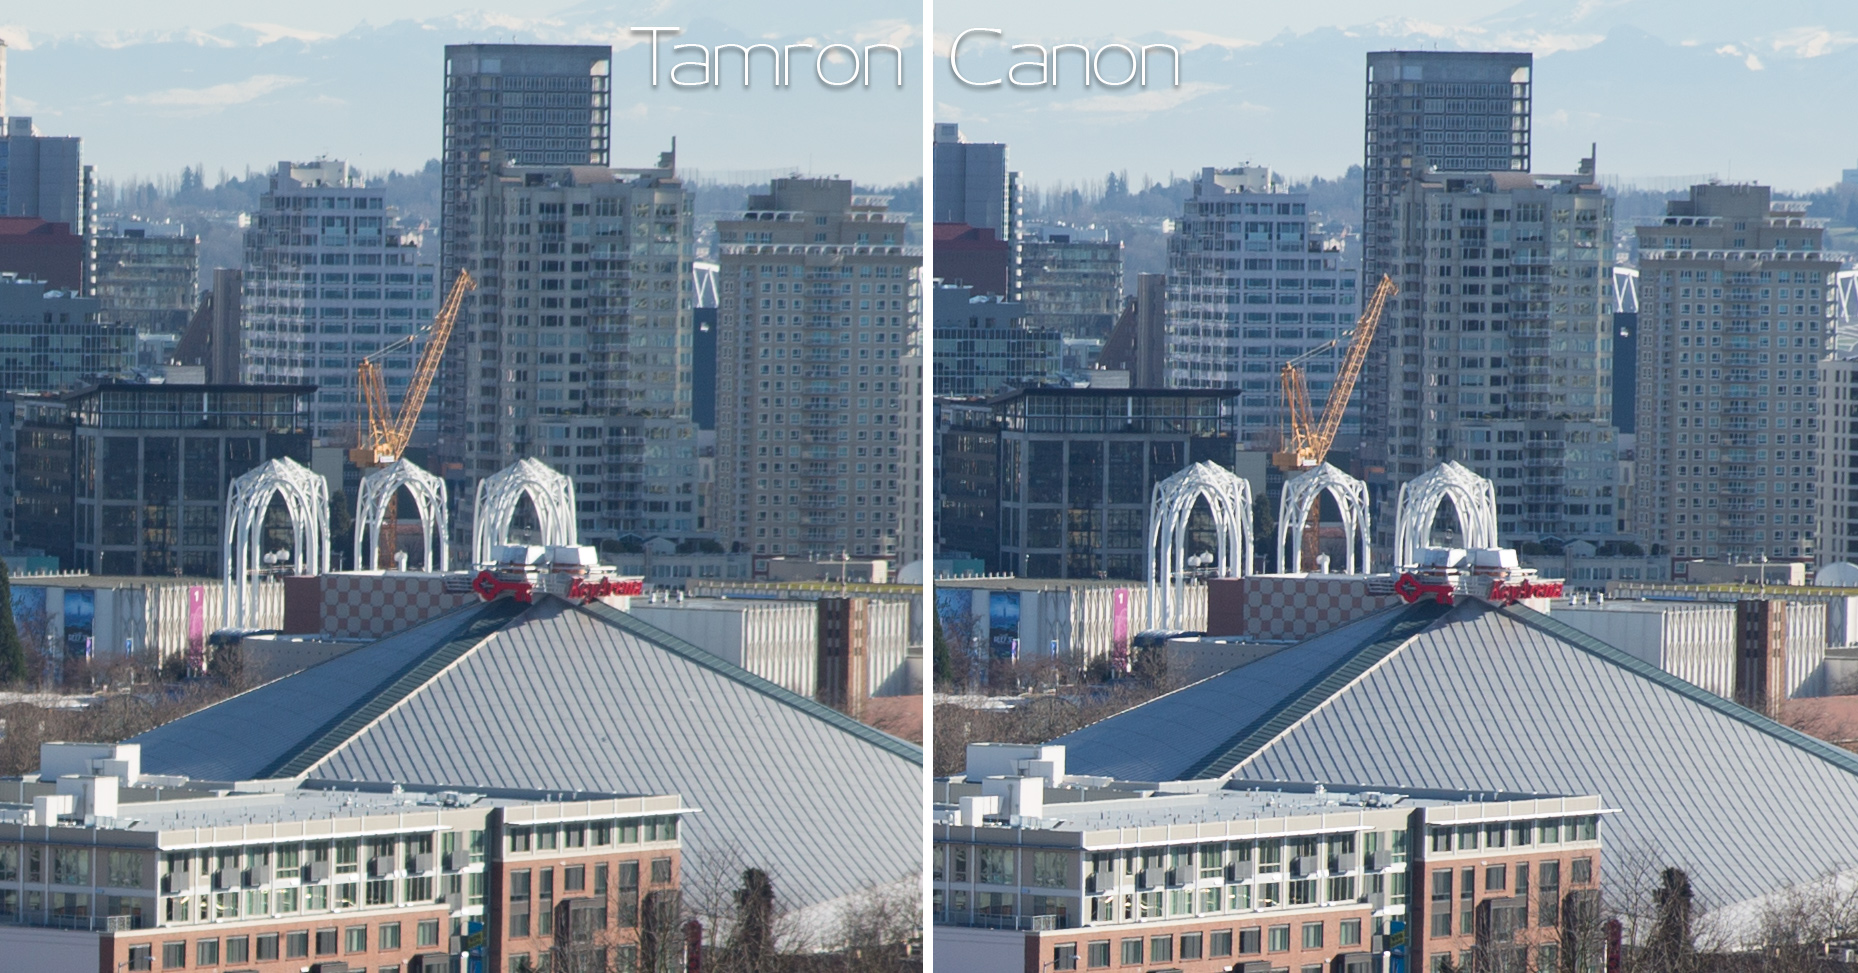 Canon and Tamron comparison at 70mm f/2.8